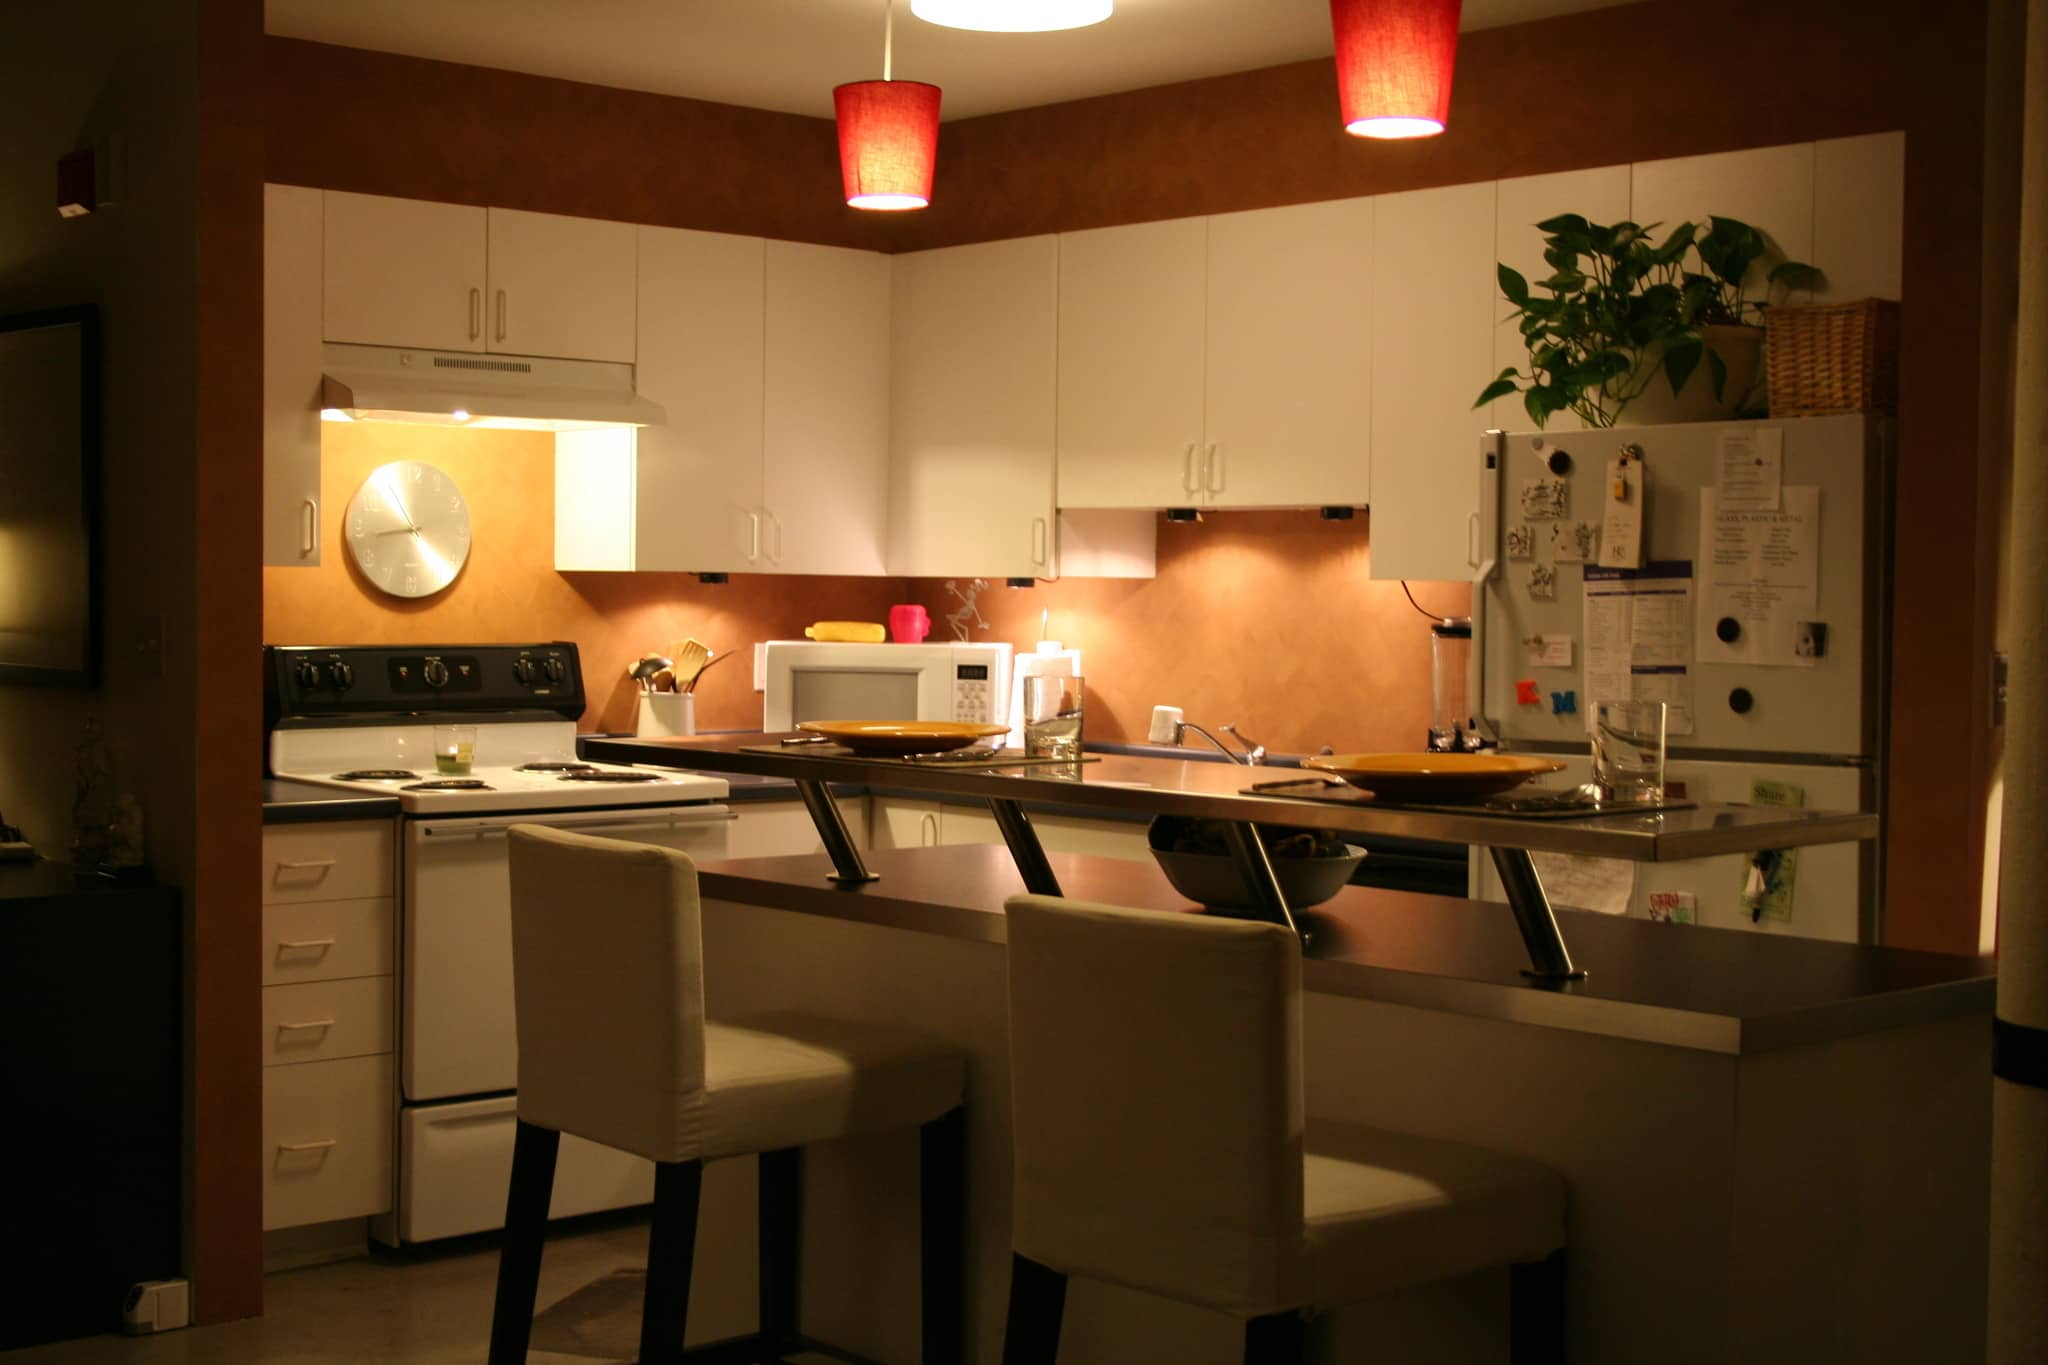 Kate's Creatively Renovated Rental Kitchen: gallery image 1